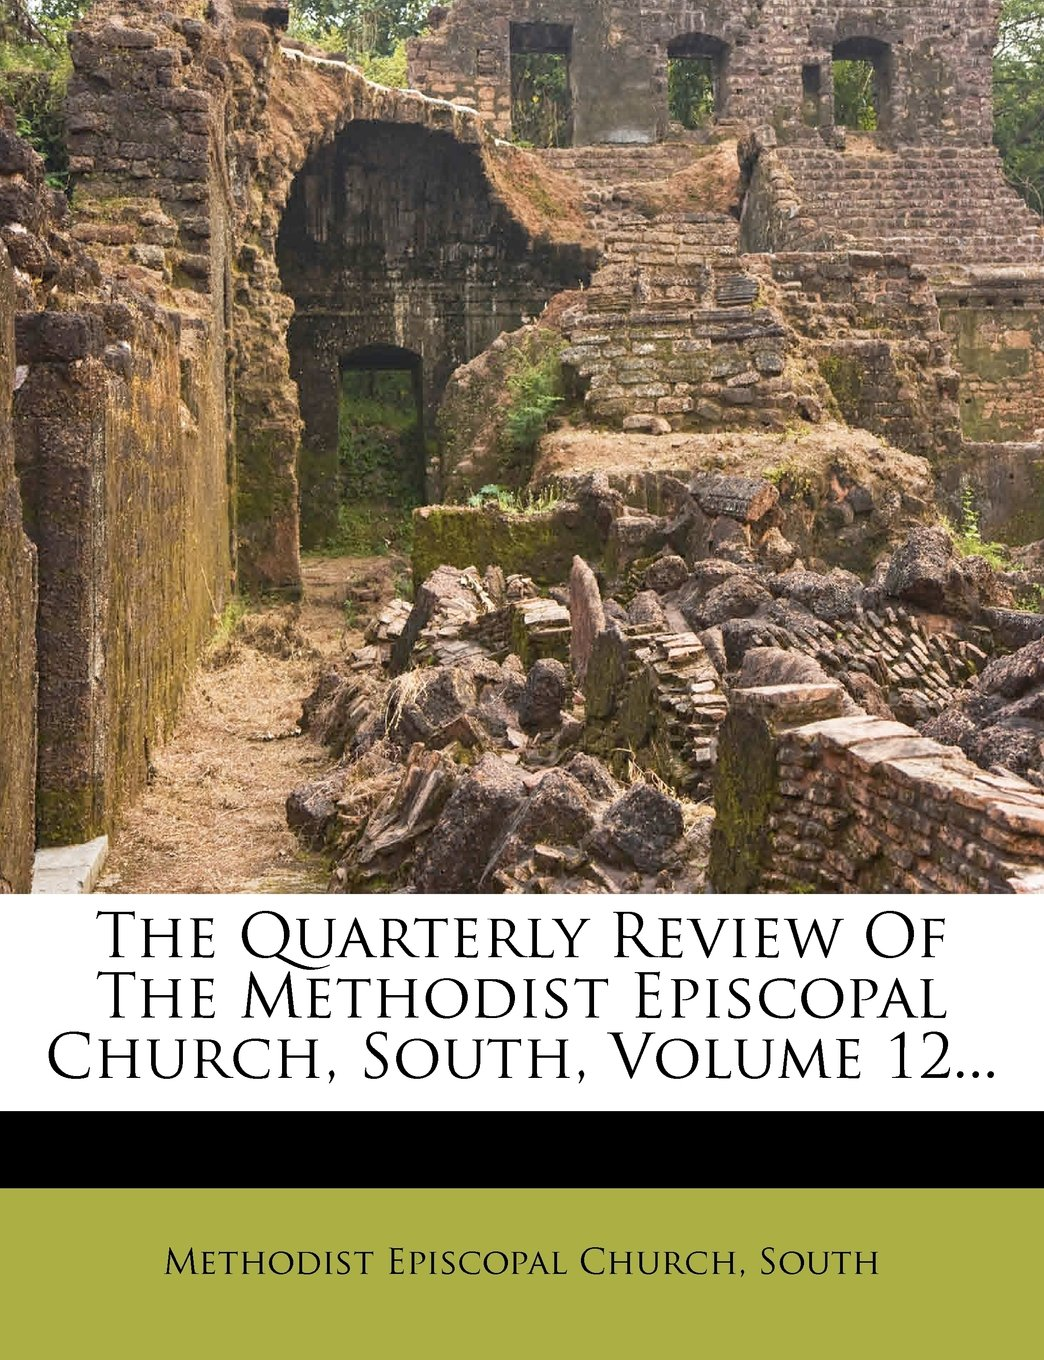 Download The Quarterly Review Of The Methodist Episcopal Church, South, Volume 12... PDF